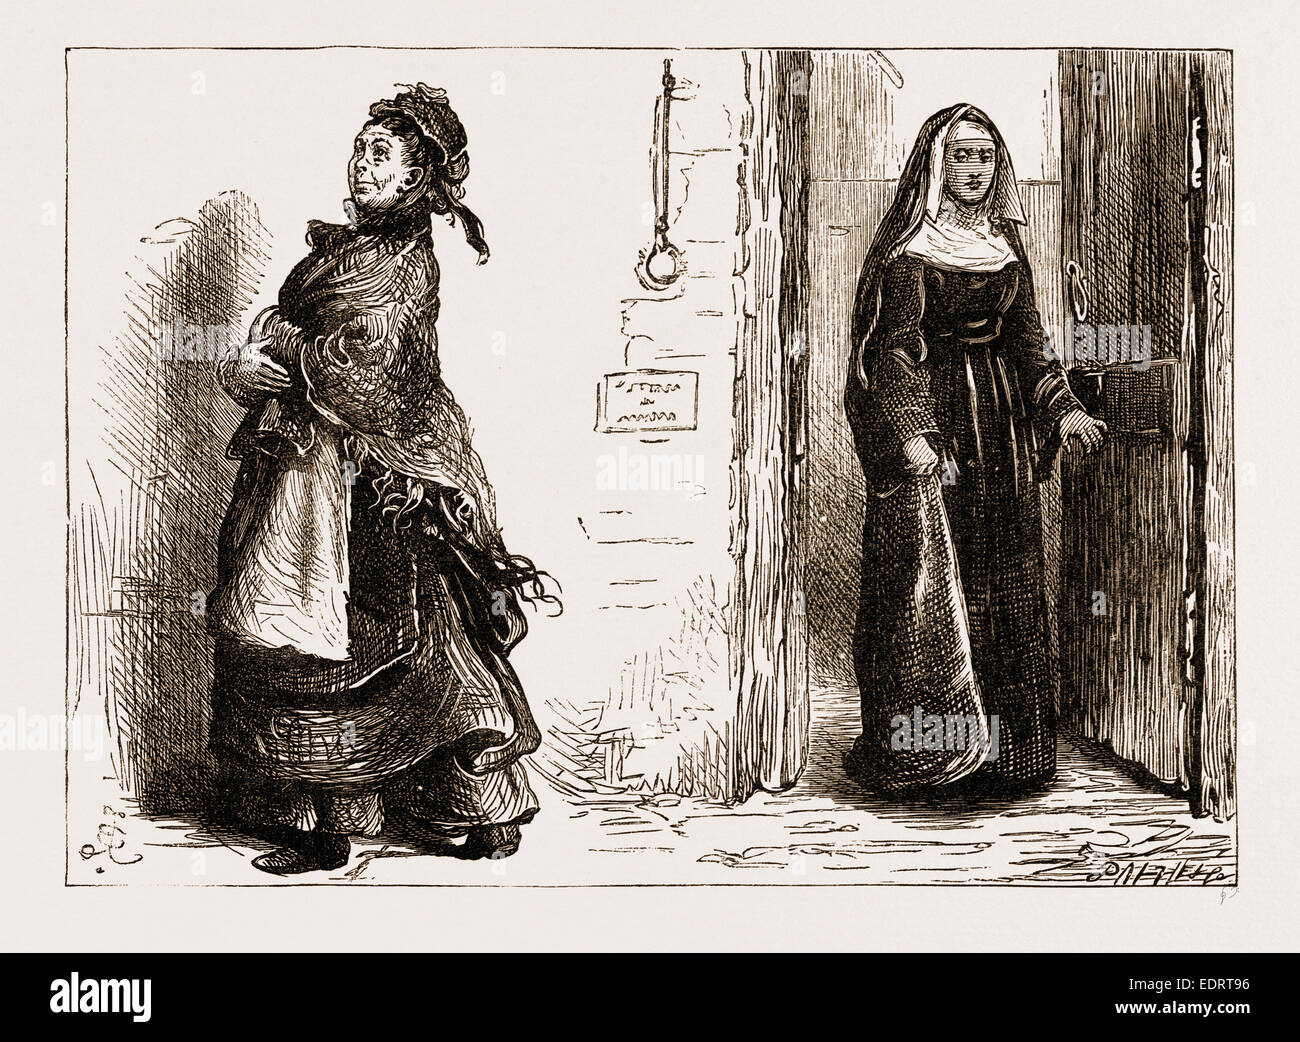 MRS. GINX WENT HOME RATHER JUBILANT, SHE WAS A MARTYR, 1876 - Stock Image